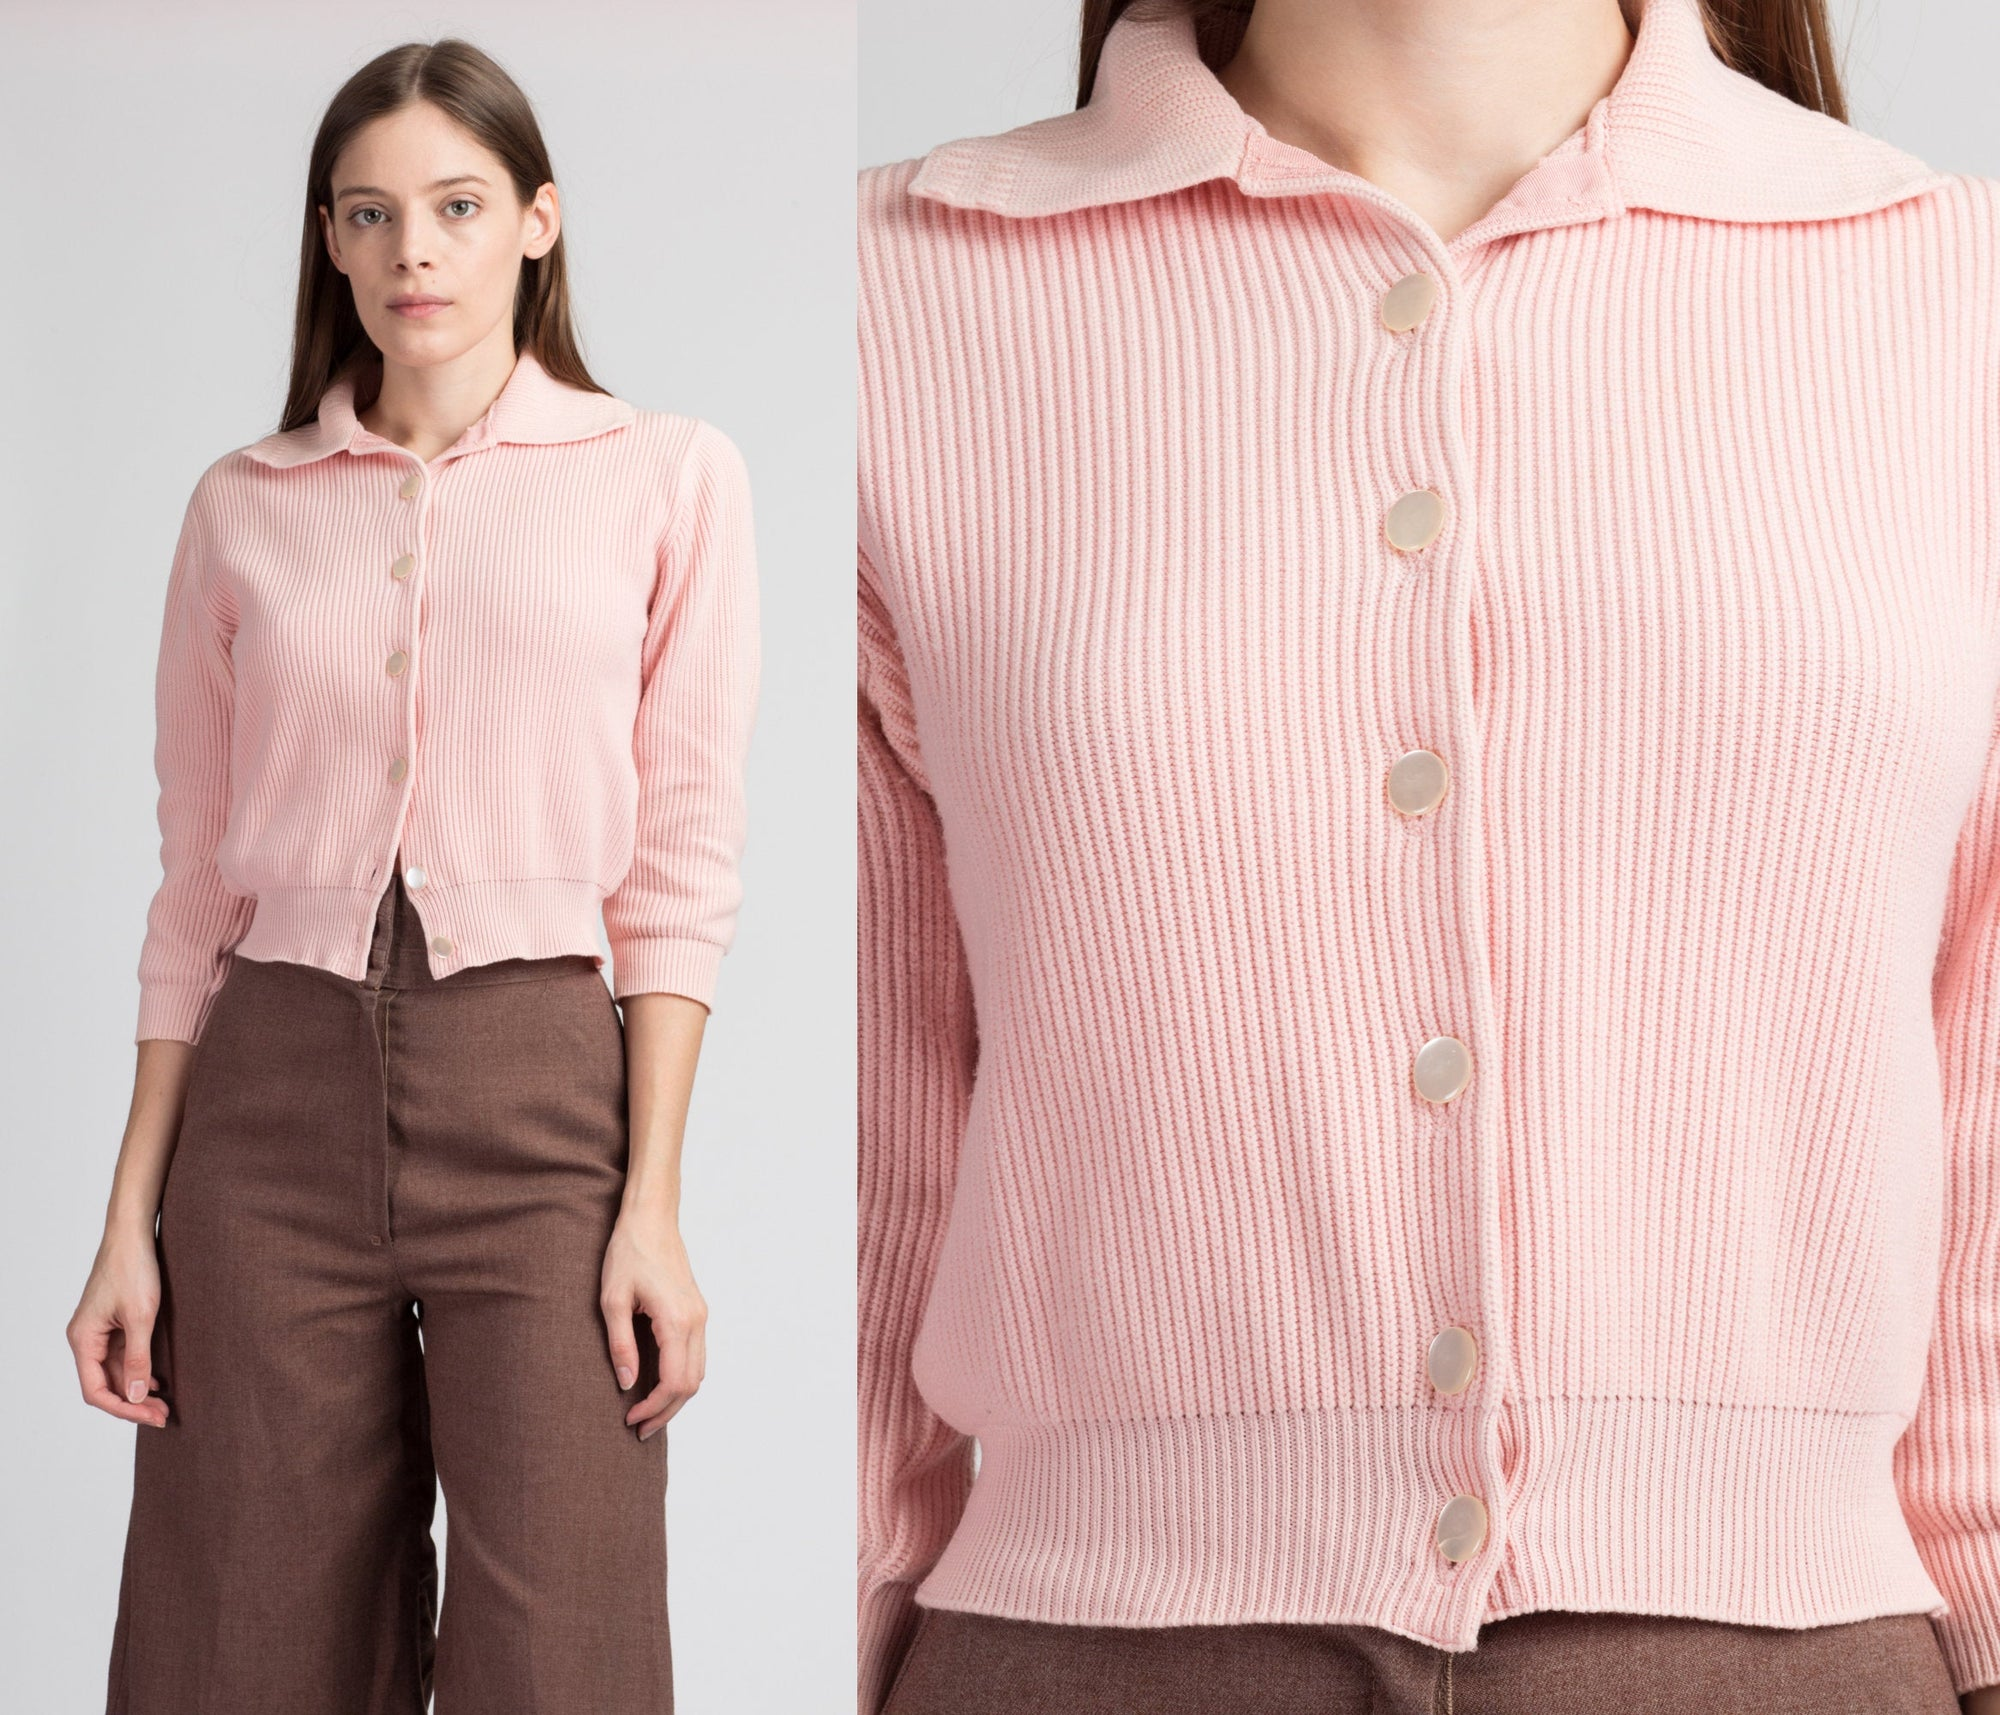 60s Cropped Pink Knit Cardigan - Extra Small